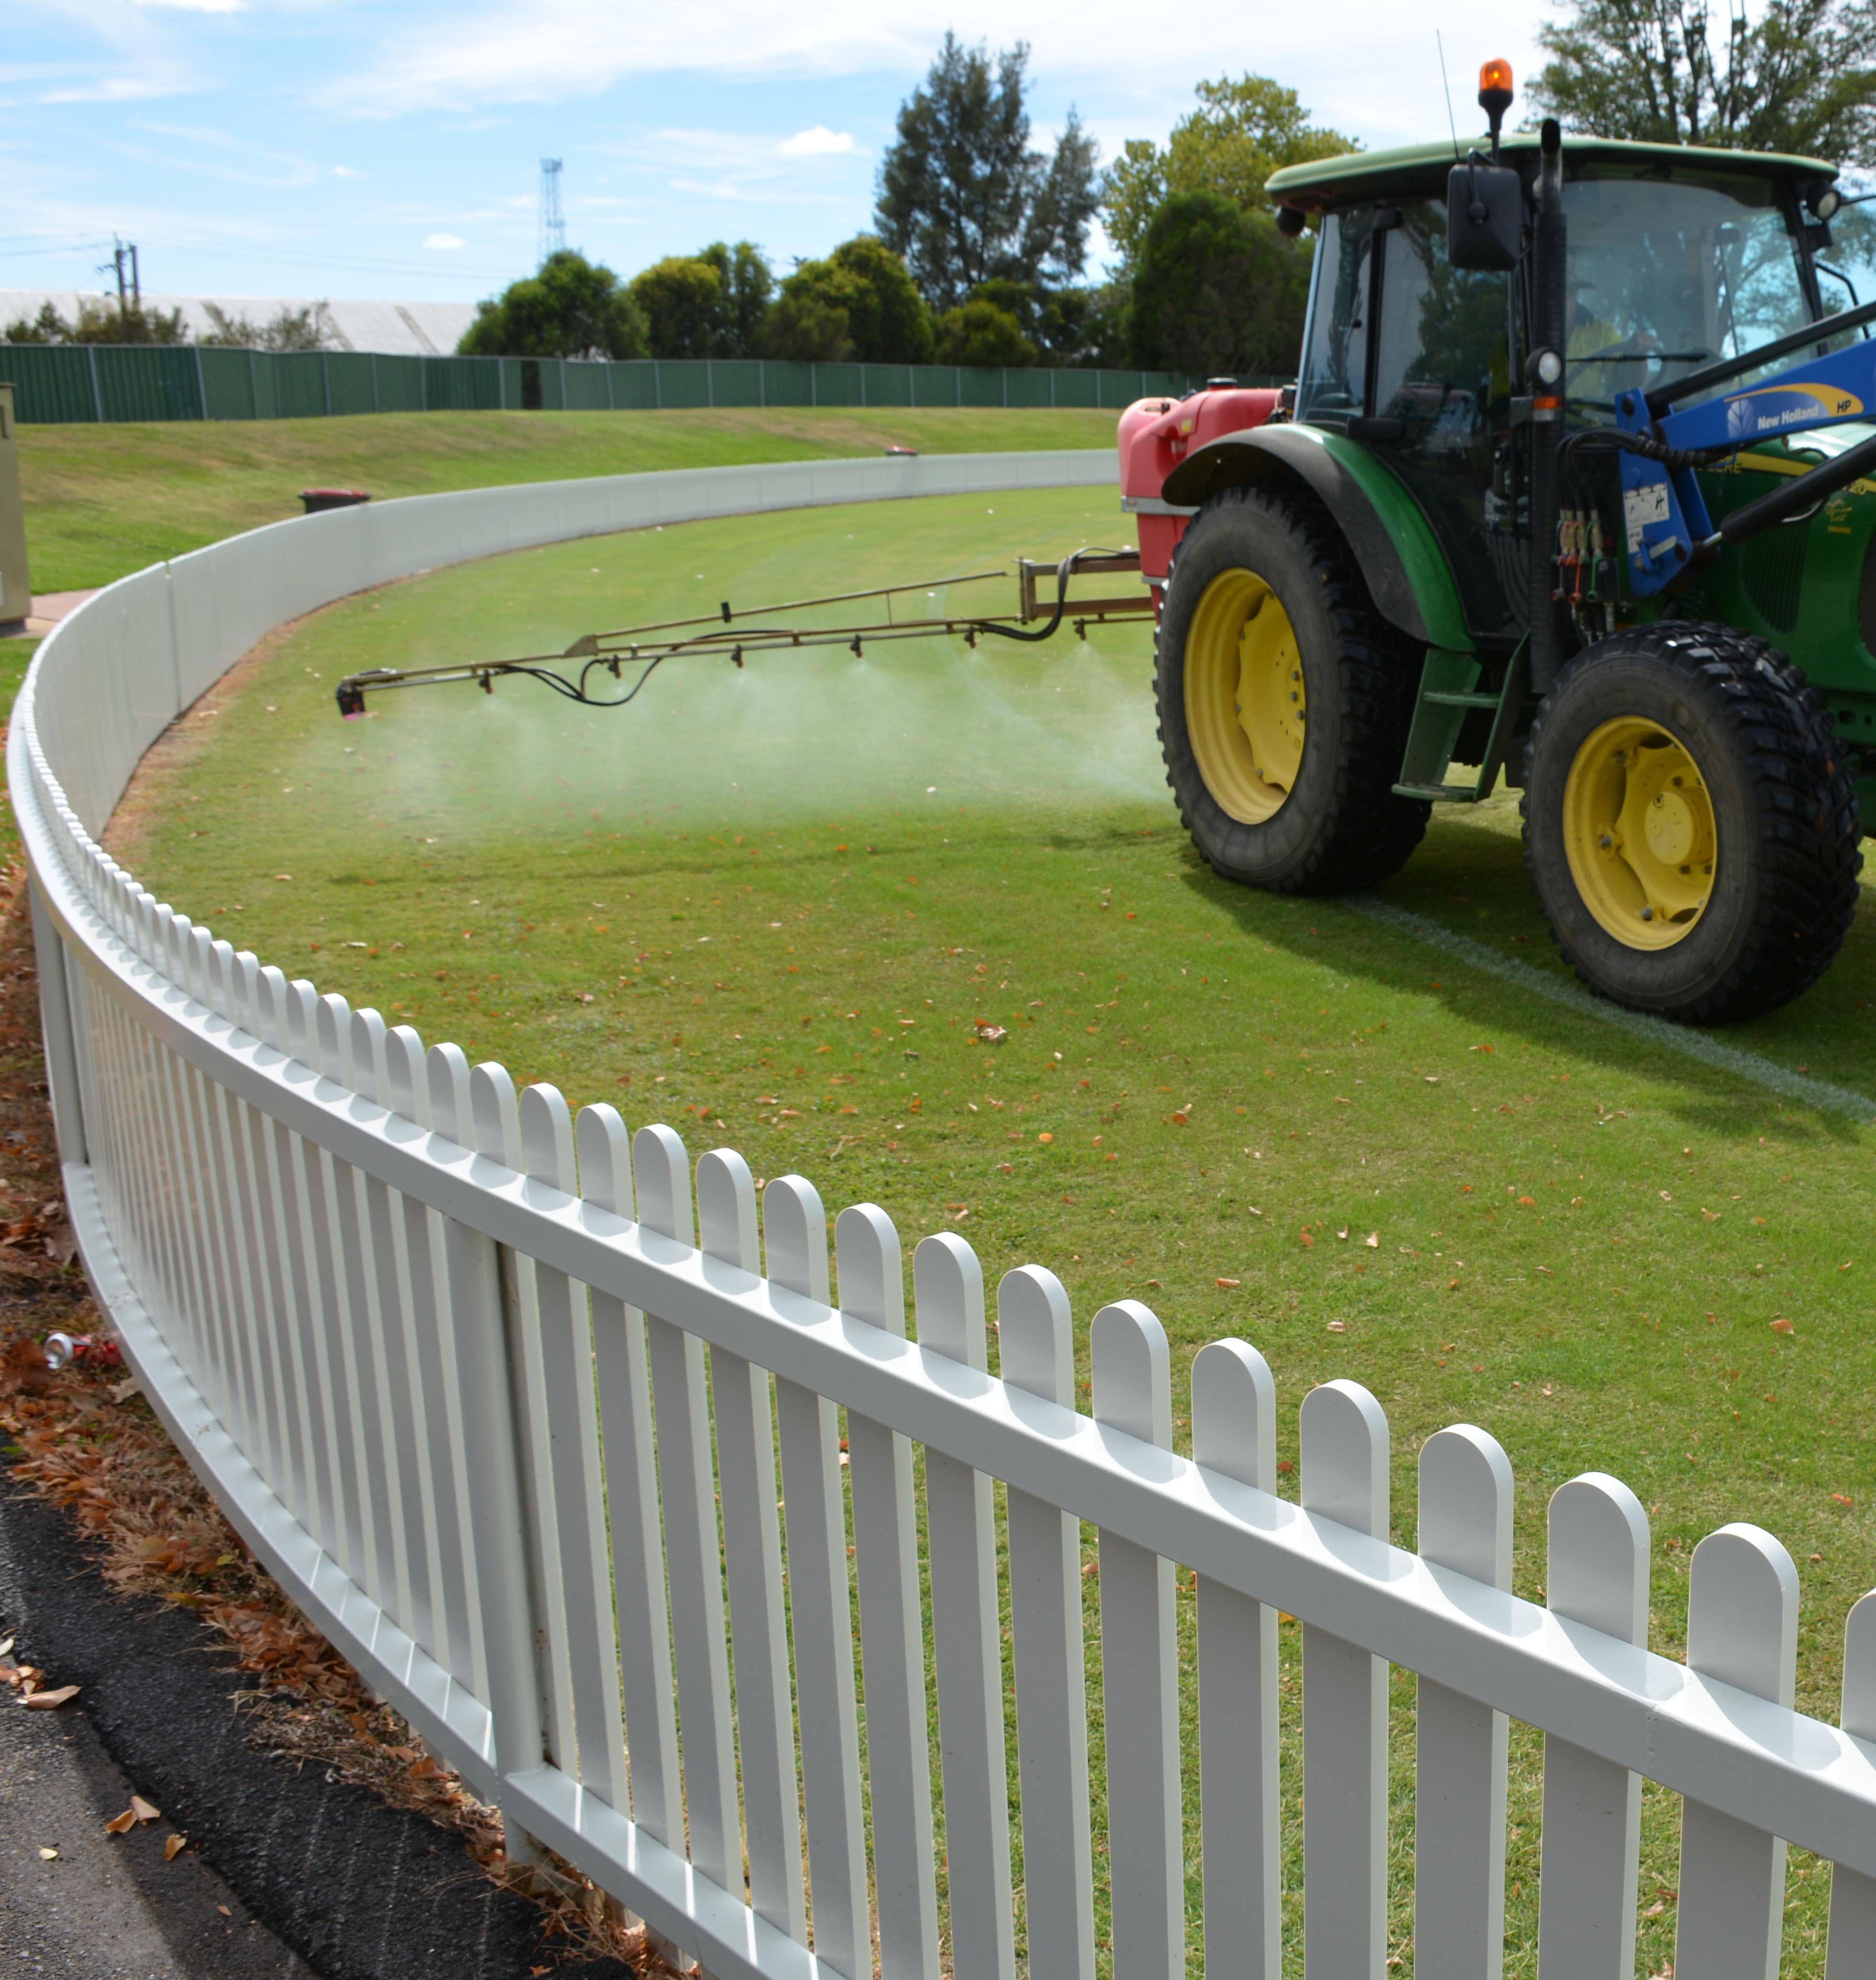 New picket fence tractor